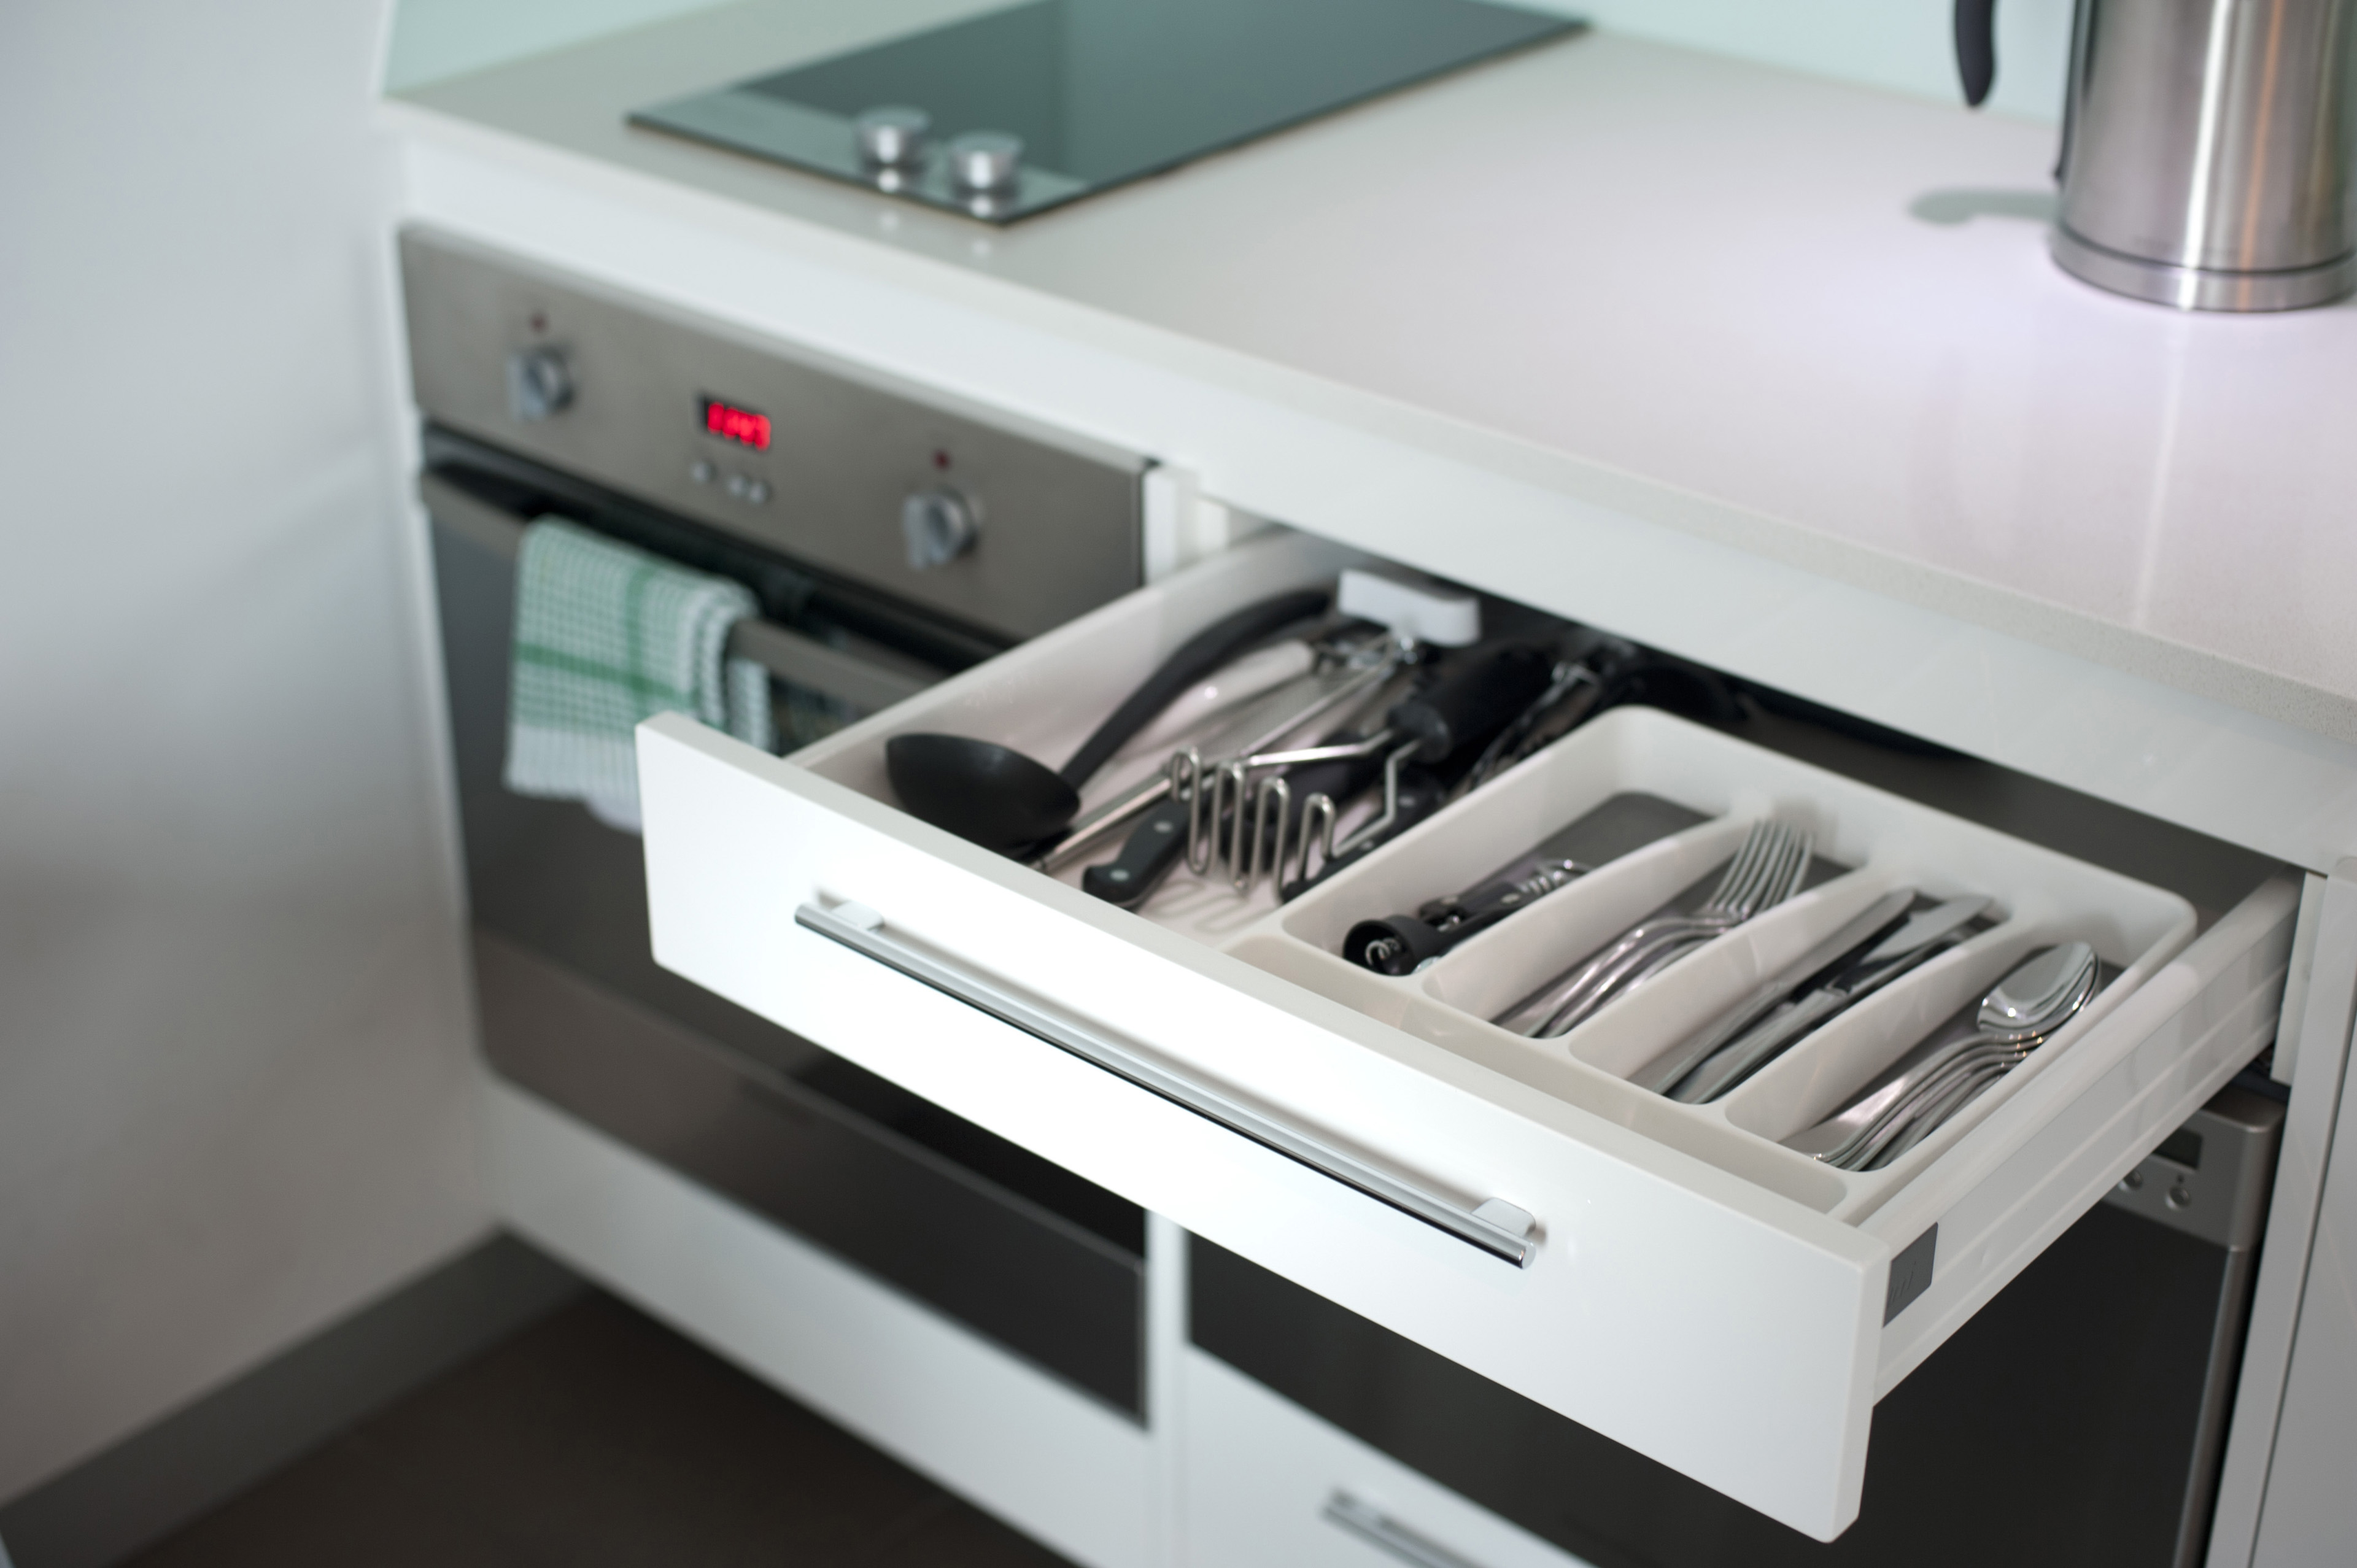 Image Of Open Cutlery Drawer In A Kitchen Cabinet